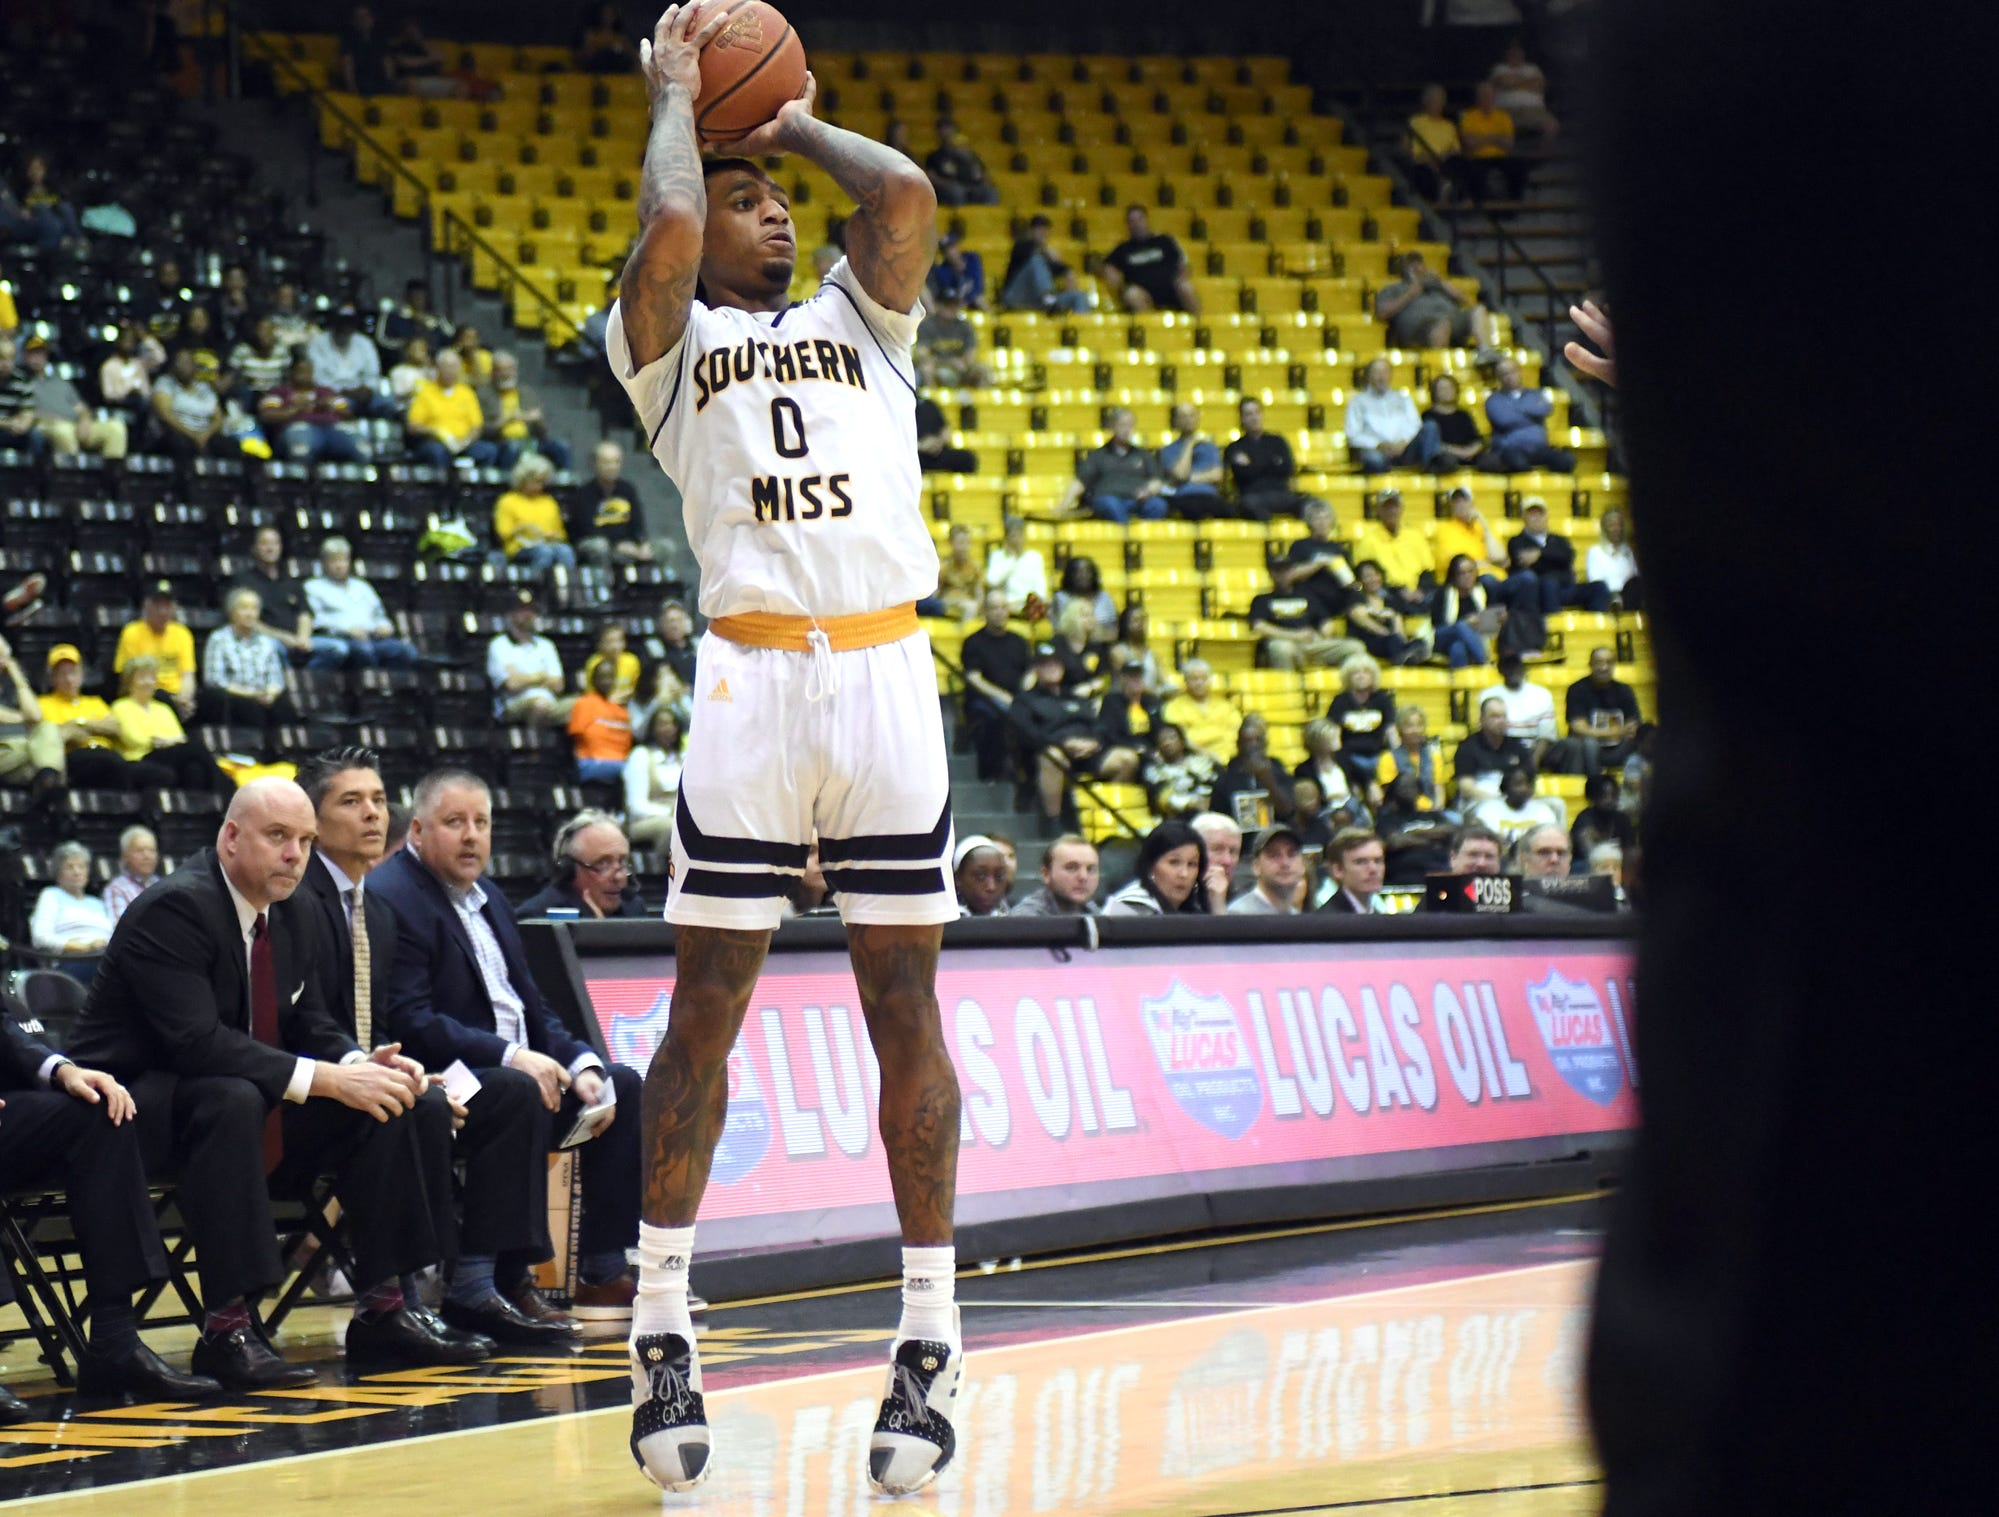 Southern Miss guard Dominic Magee shoots for the basket in a game against UTSA in Reed Green Coliseum on Saturday, March 9, 2019.